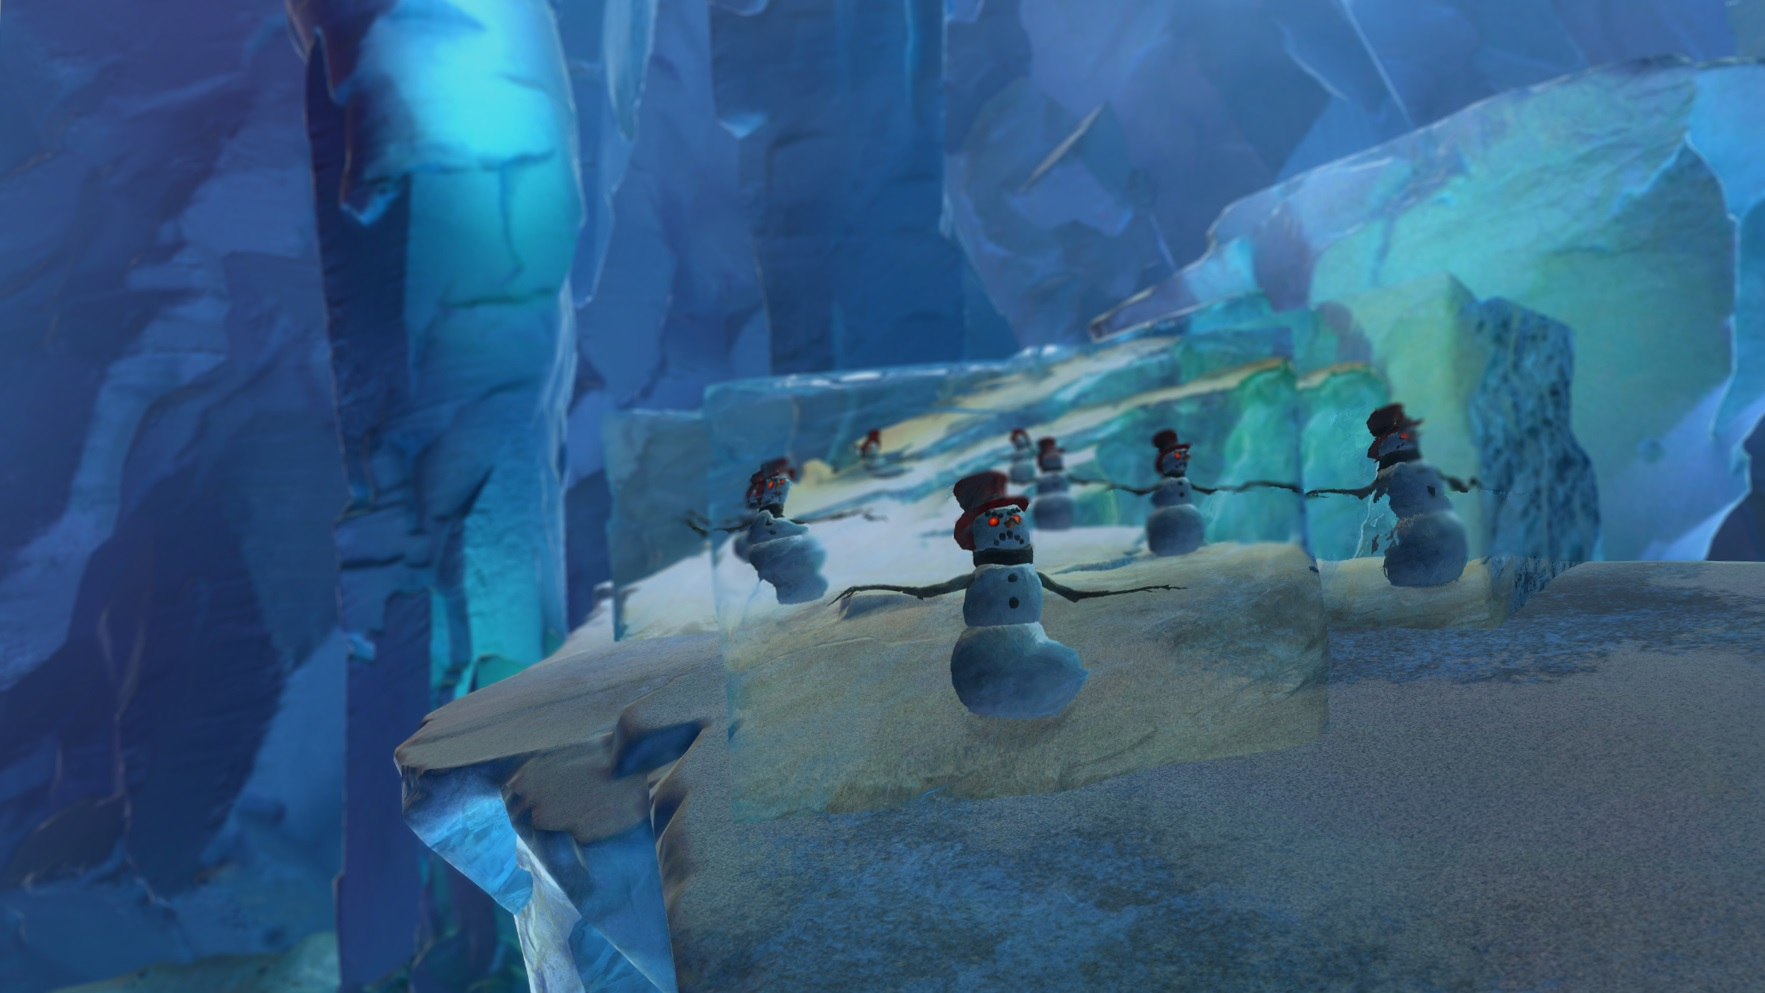 In Guild Wars 2's Wintersday you must free the snowmen from